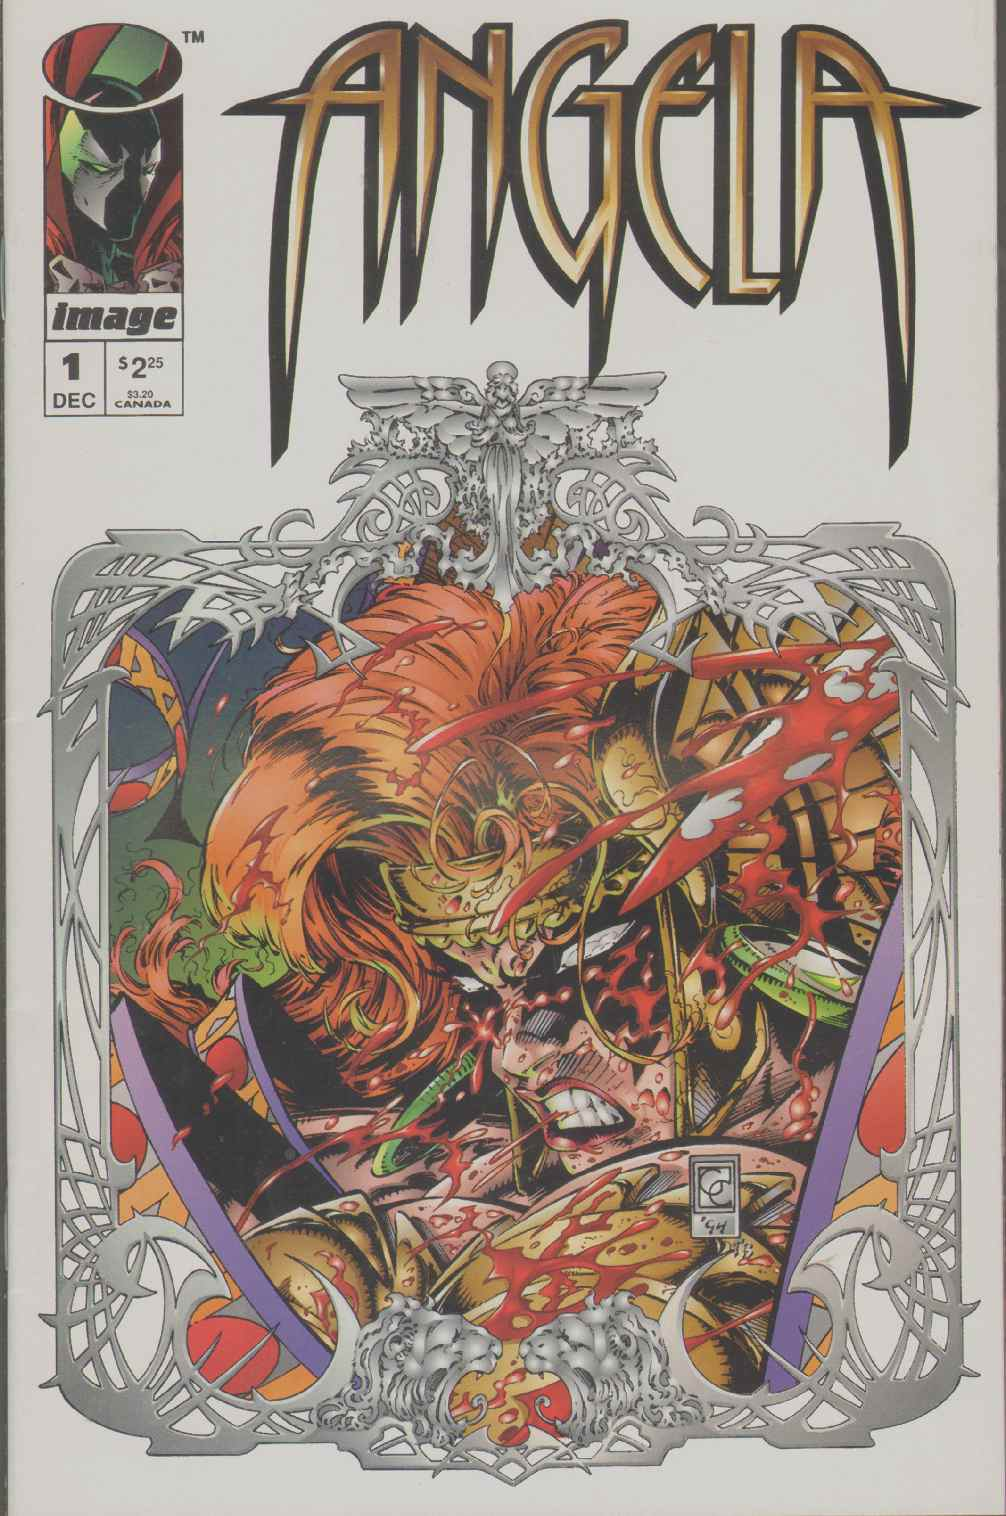 ANGELA  (1994) #1 Does Not Include Pinup., Gaiman, Neil